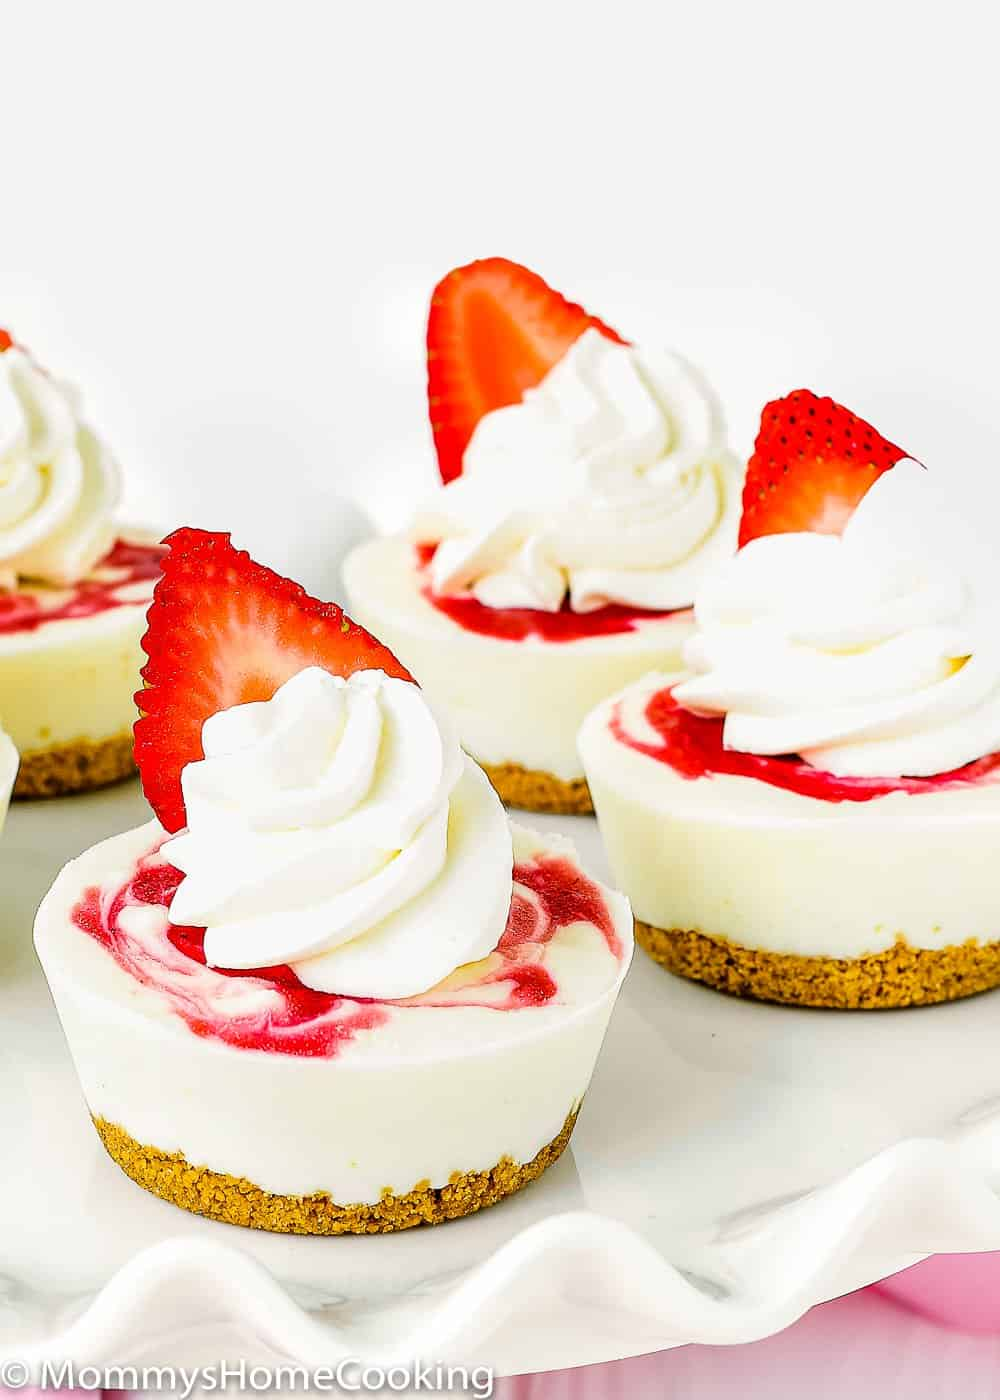 Mini Greek Yogurt Strawberry Cheesecakes with whipped cream